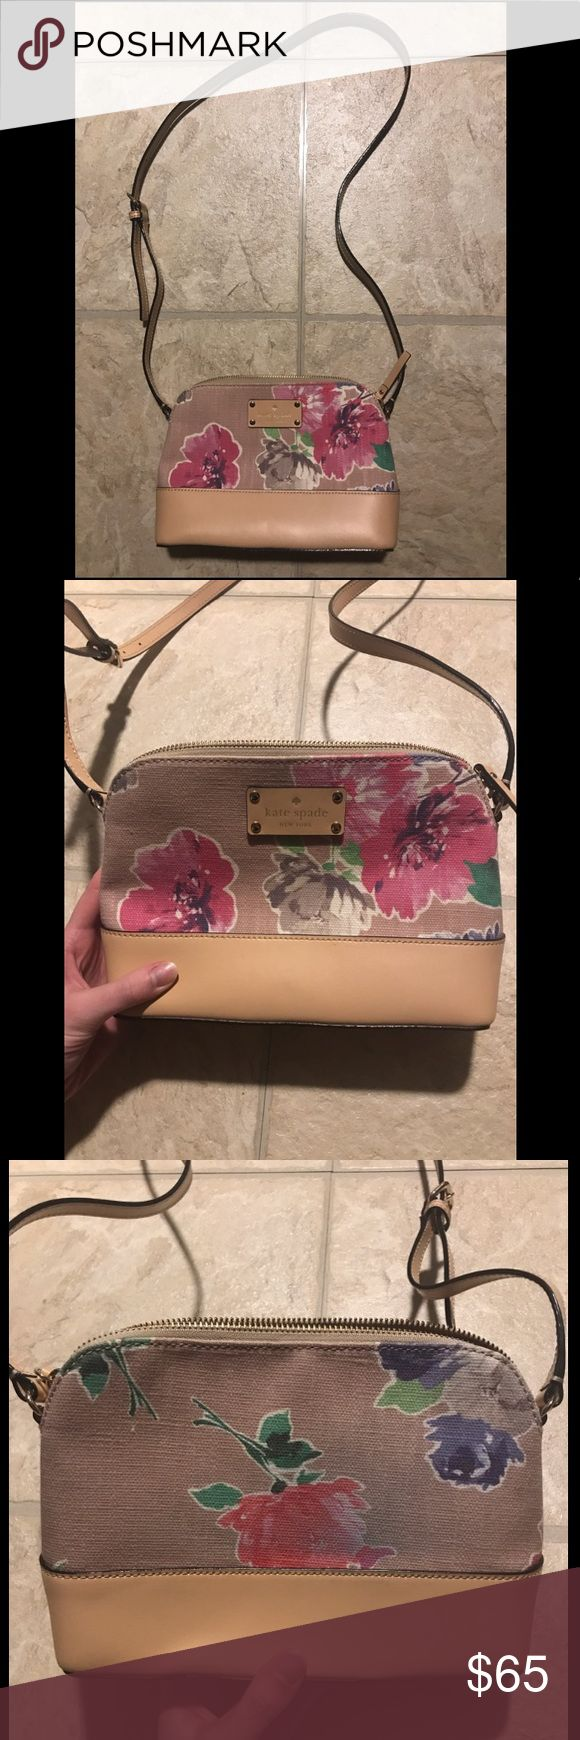 Kate Spade Floral Crossbody Bag Kate Spade Floral Crossbody Bag. Perfect condition except jean wash stain on the back of the bag (pictured). kate spade Bags Crossbody Bags